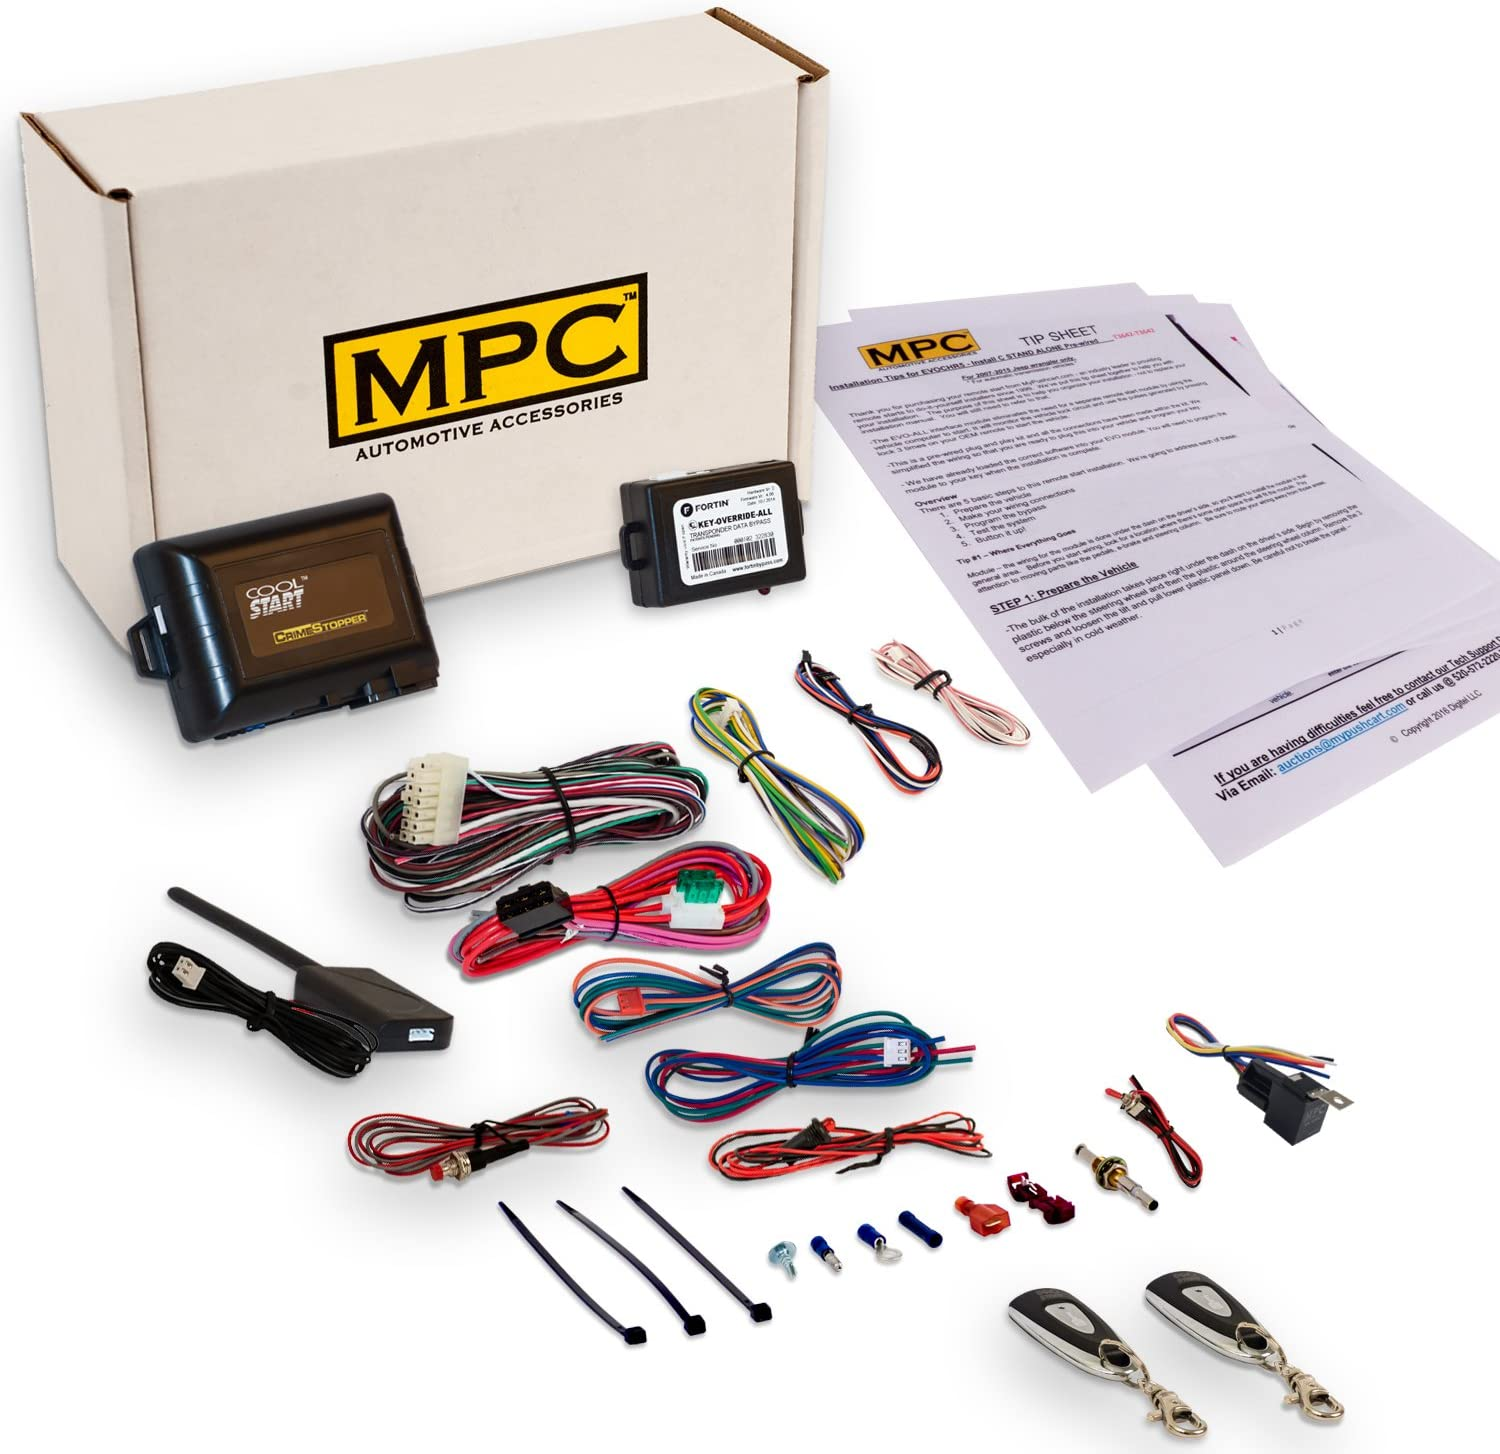 2 MPC Complete 1-Button Remote Start Kit for 2005-2010 Toyota Camry Extended Range Remotes